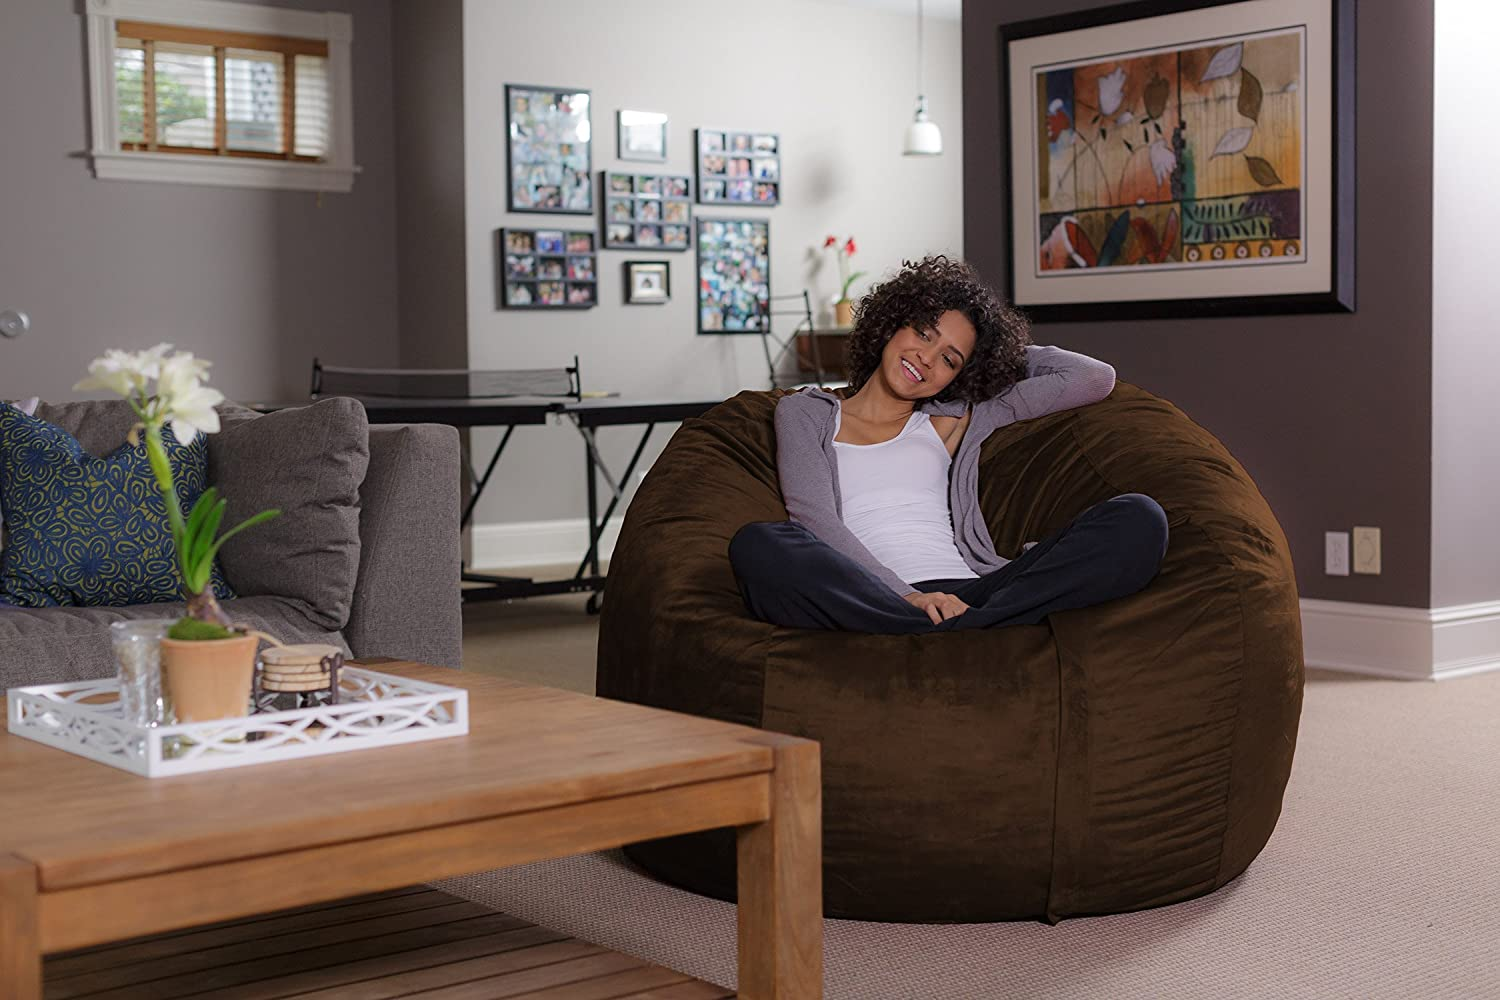 Bean Bag Chair In Home